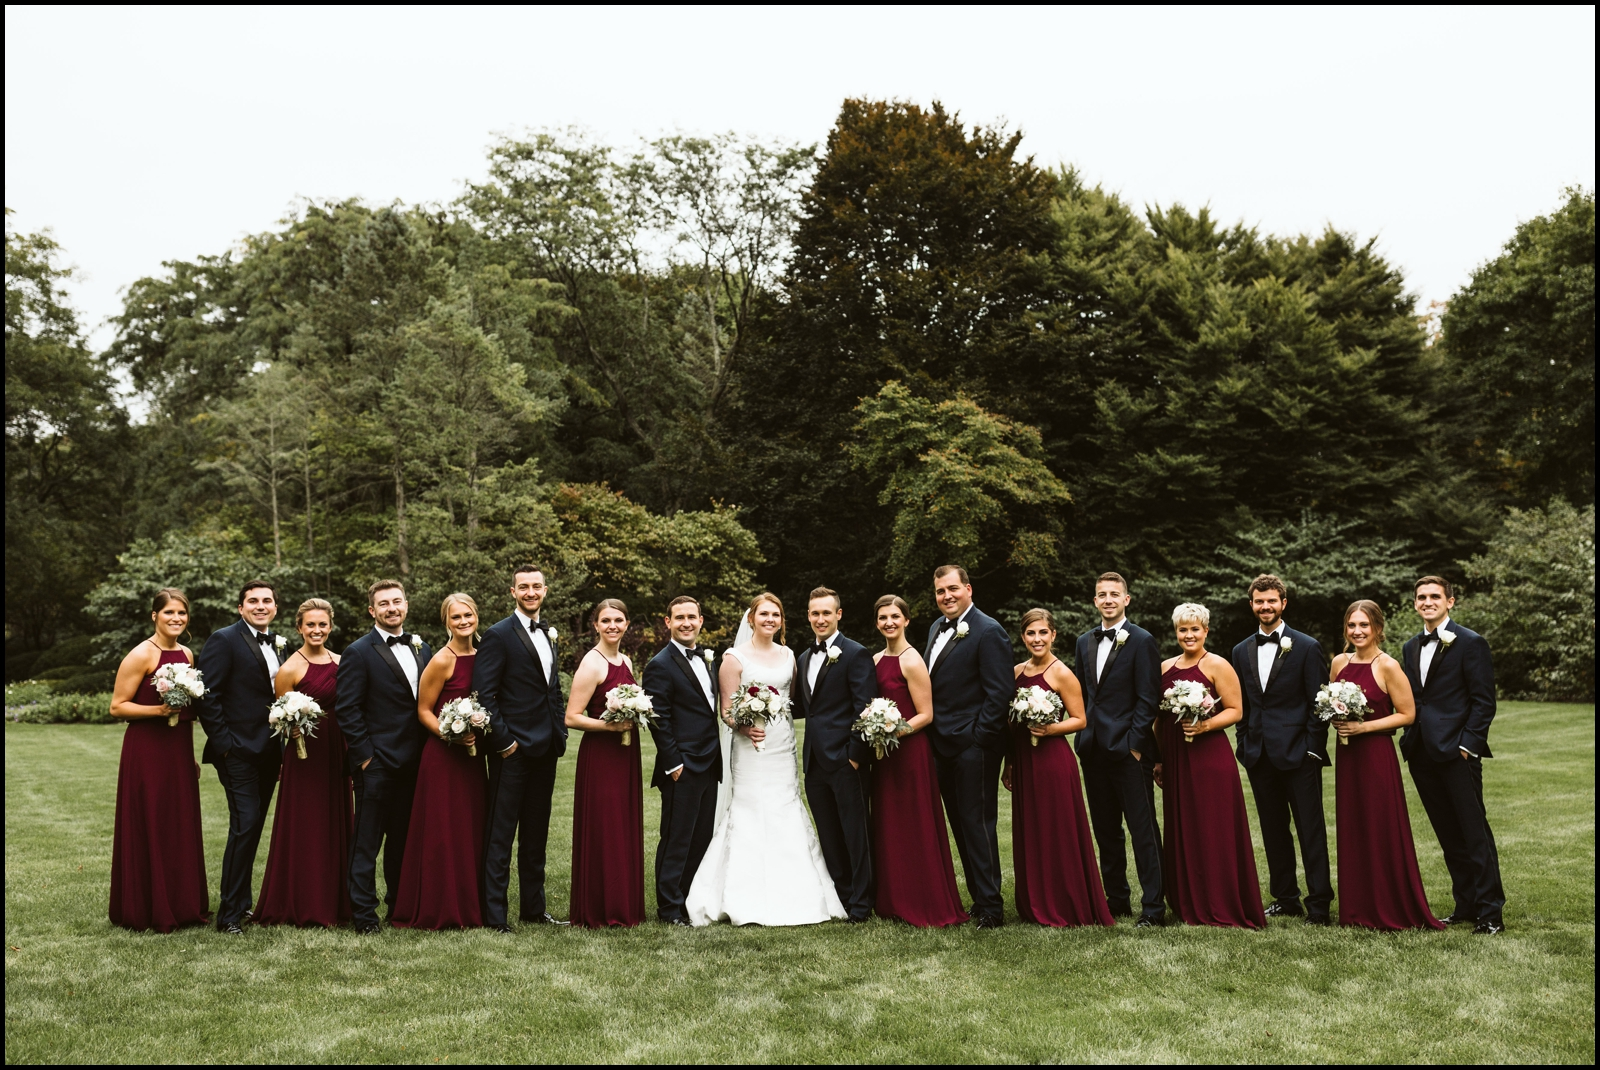 Bridal party with the bride and groom